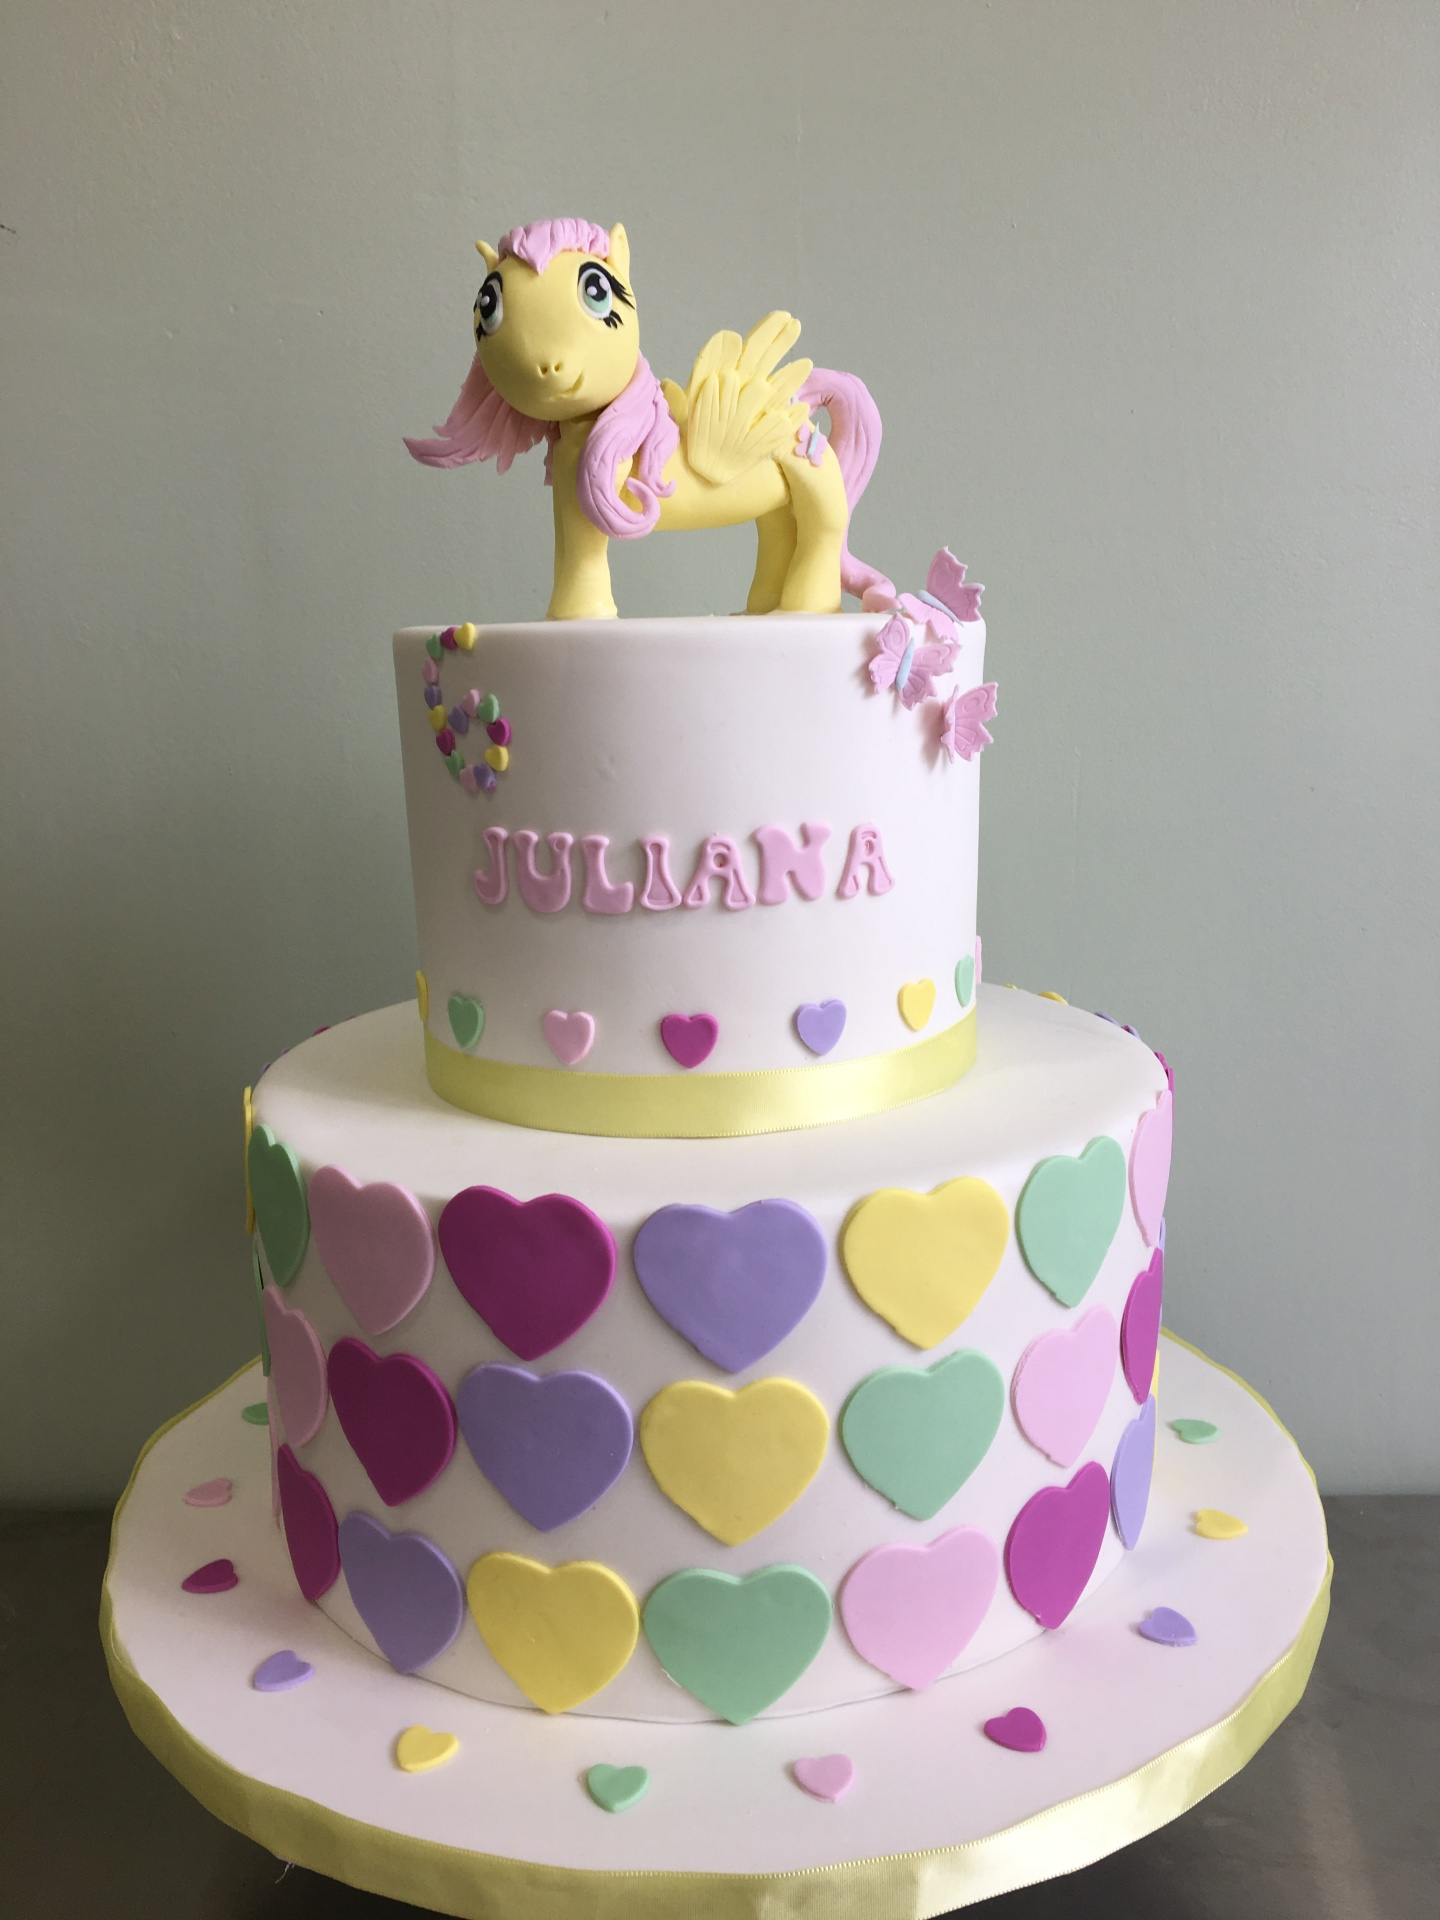 Custom Cakes NJ My Little Pony Shutterfly Cake with Pastel colors